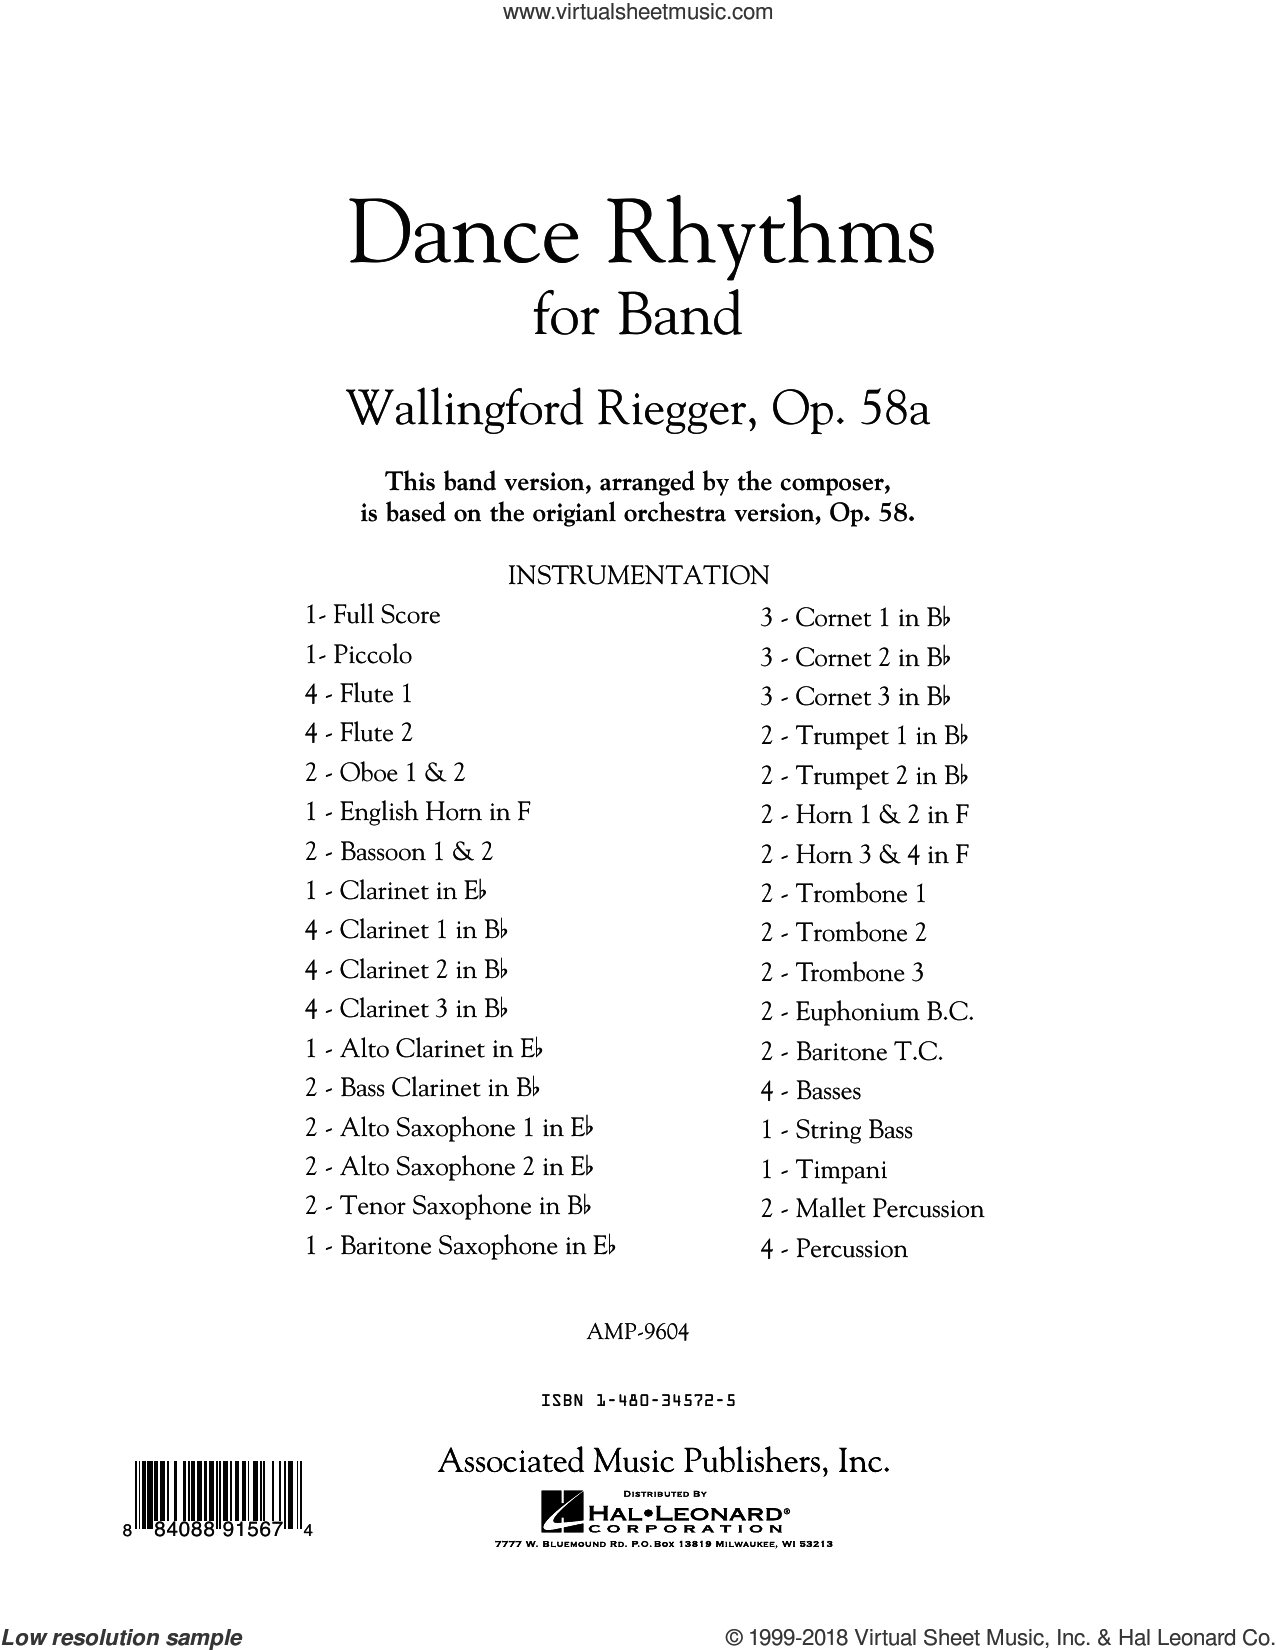 Dance Rhythms for Band, Op. 58 (COMPLETE) sheet music for concert band by Wallingford Riegger, classical score, intermediate skill level